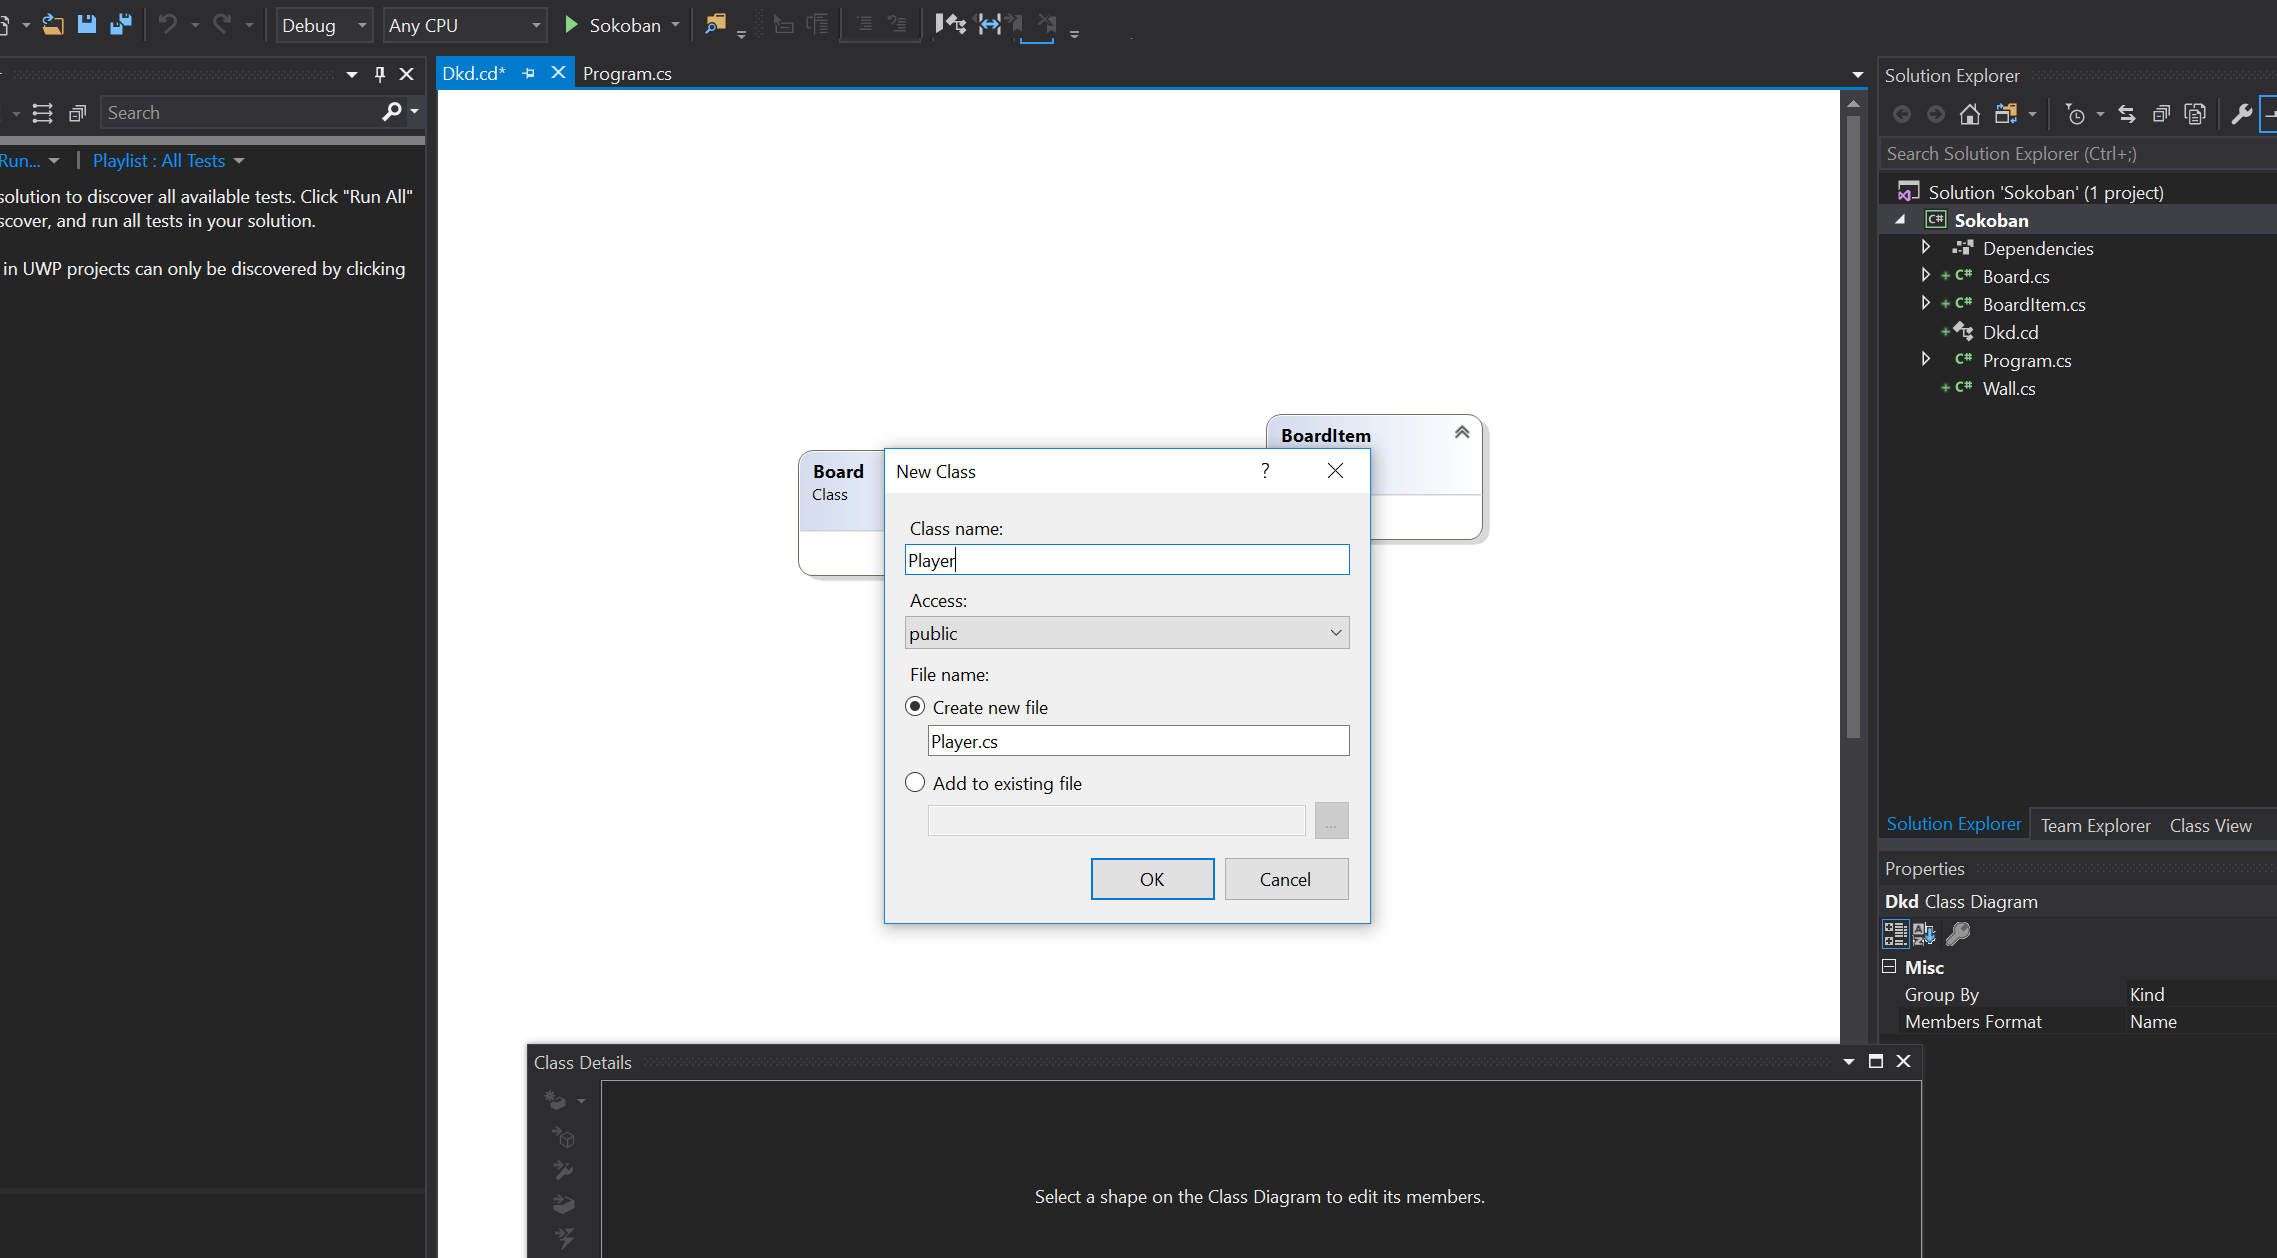 Error when creating a new class in a class diagram  · Issue